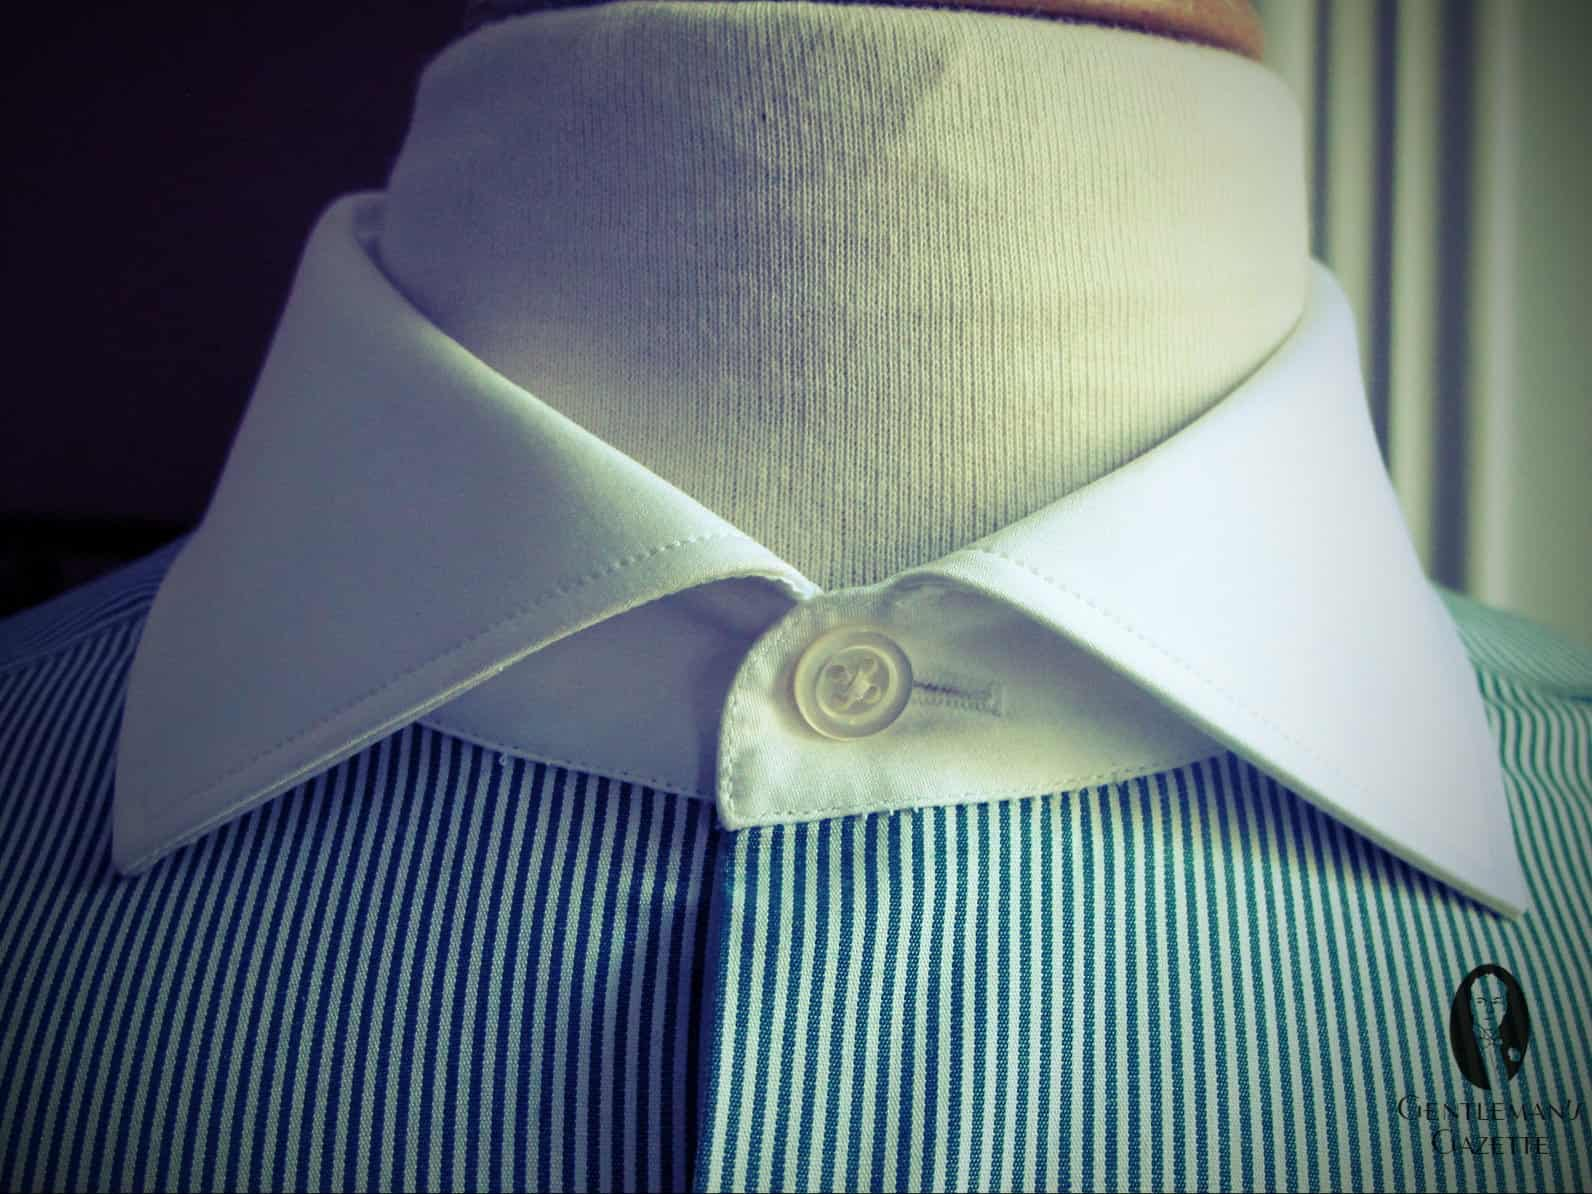 The dress shirt guide making hallmarks of a quality